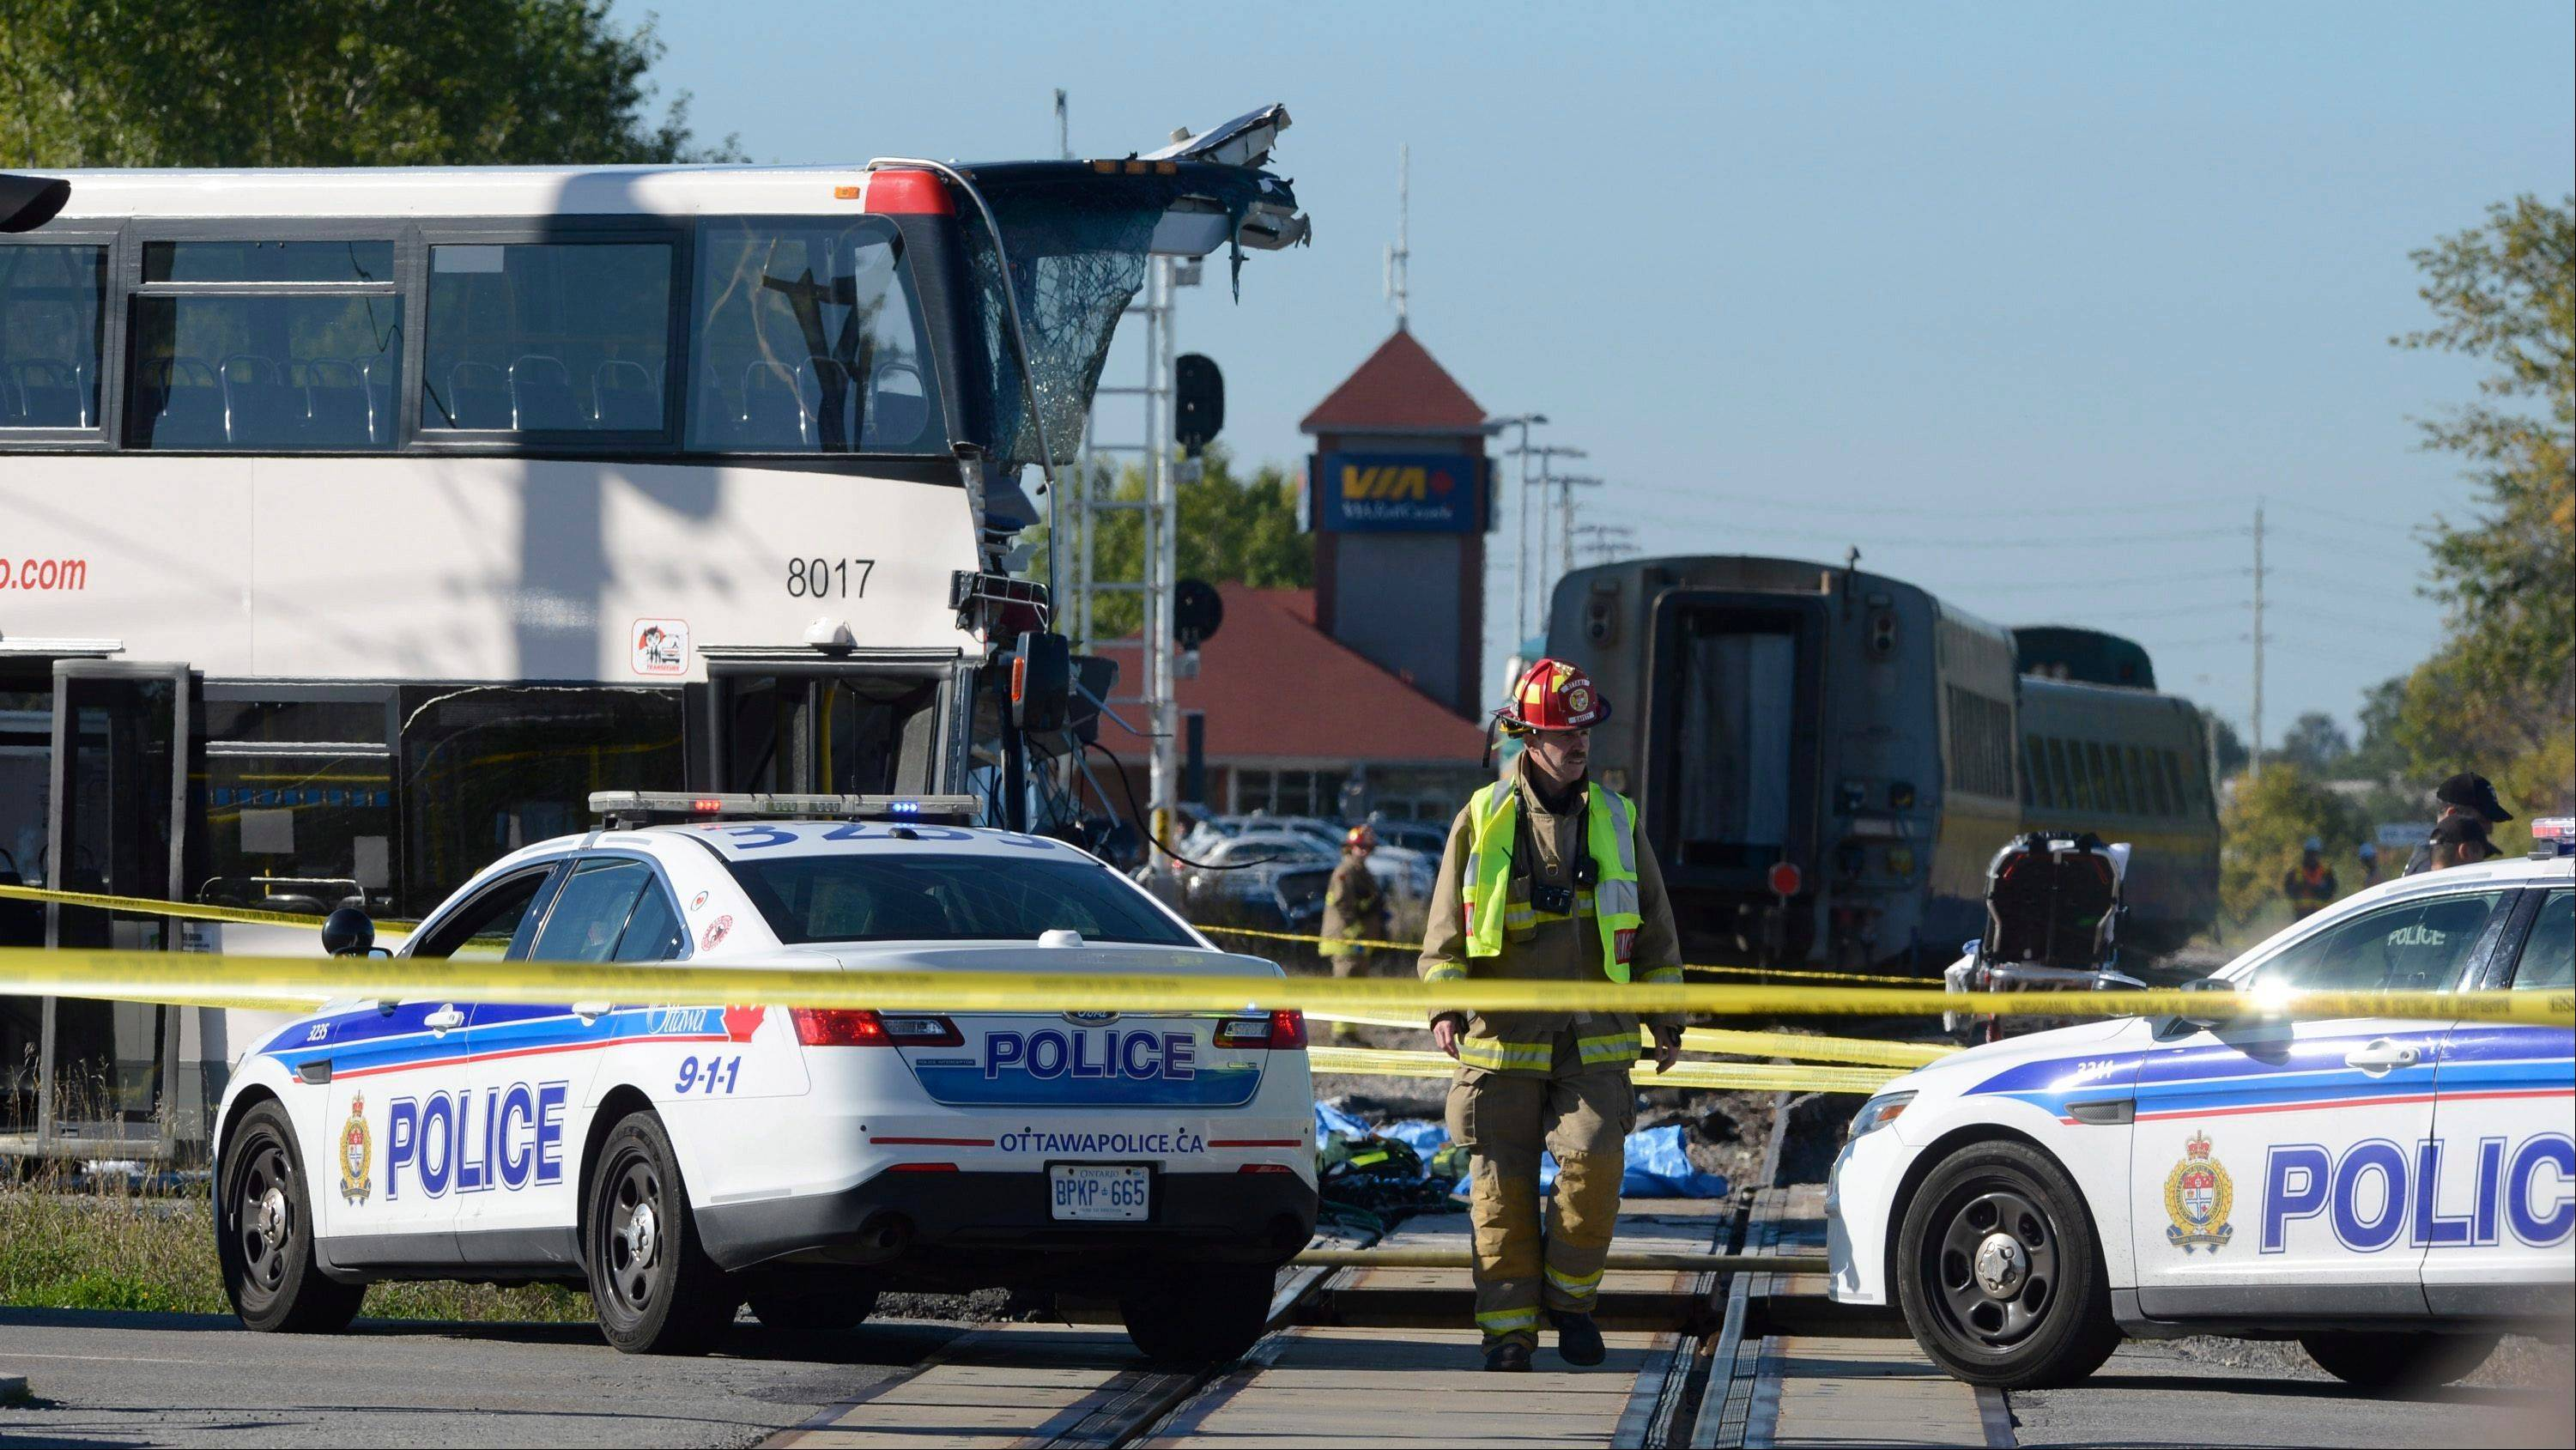 A firefighter surveys the scene of a collision with a train and a city bus in Ottawa, Ontario, Wednesday, Sept. 18, 2013. An Ottawa Fire spokesman said there are ìmultiple fatalitiesî and a number of people injured from the bus.